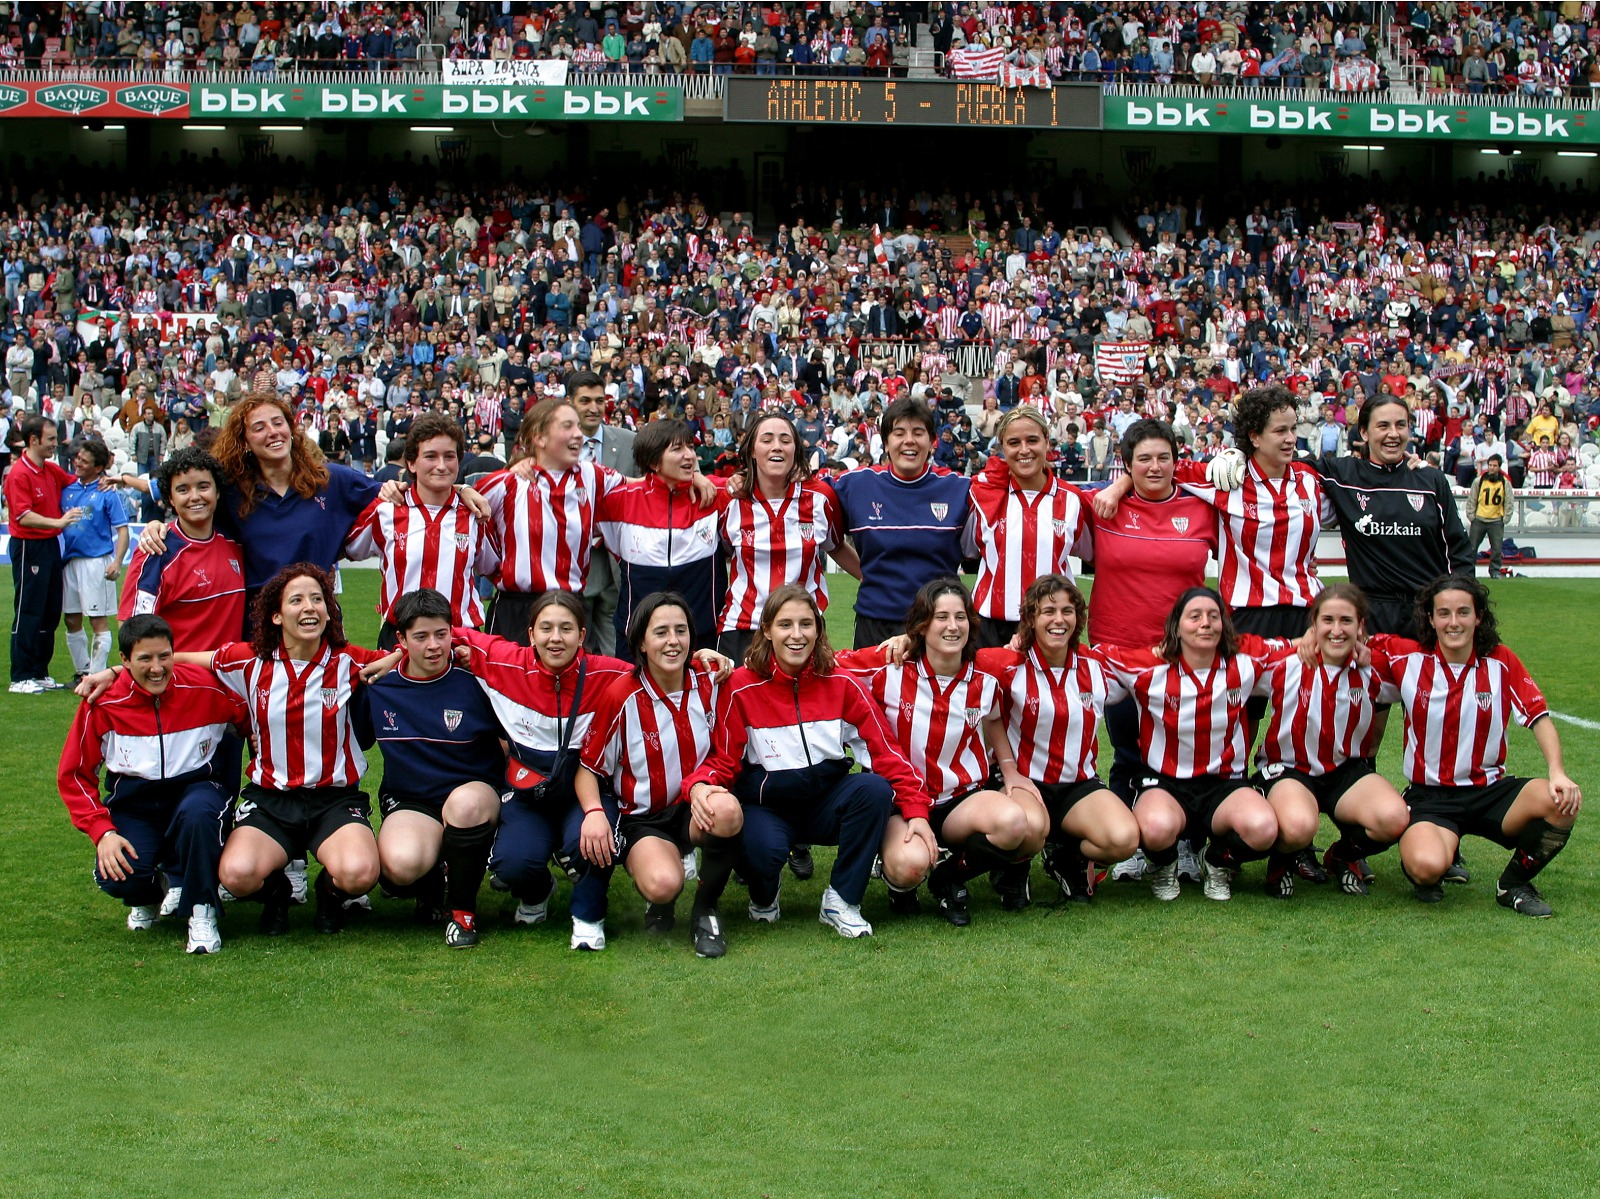 17 years since the first Athletic women's match at San Mamés